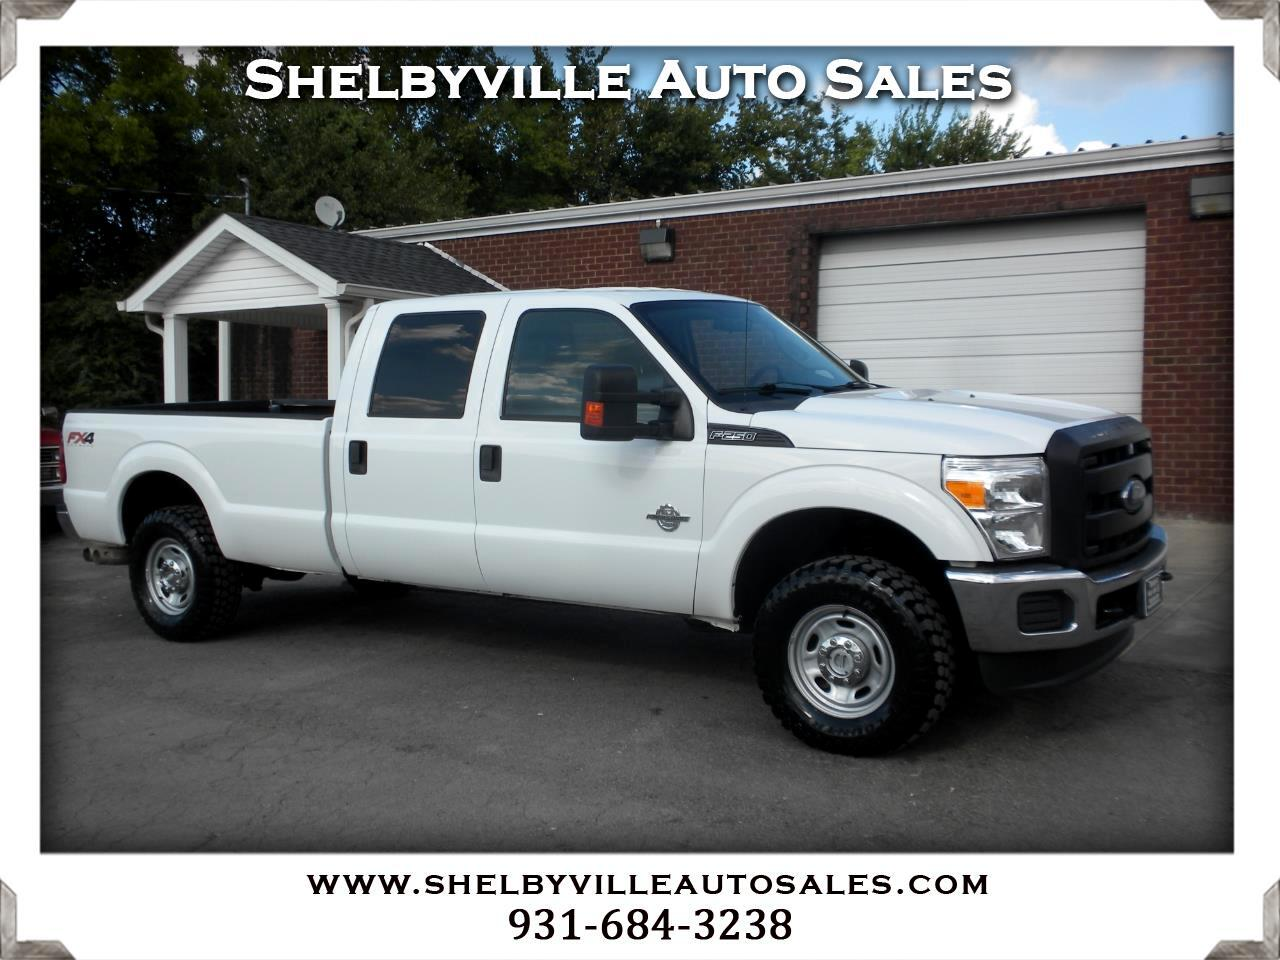 2013 Ford Super Duty F-250 SRW 4X4 Crew Cab XL